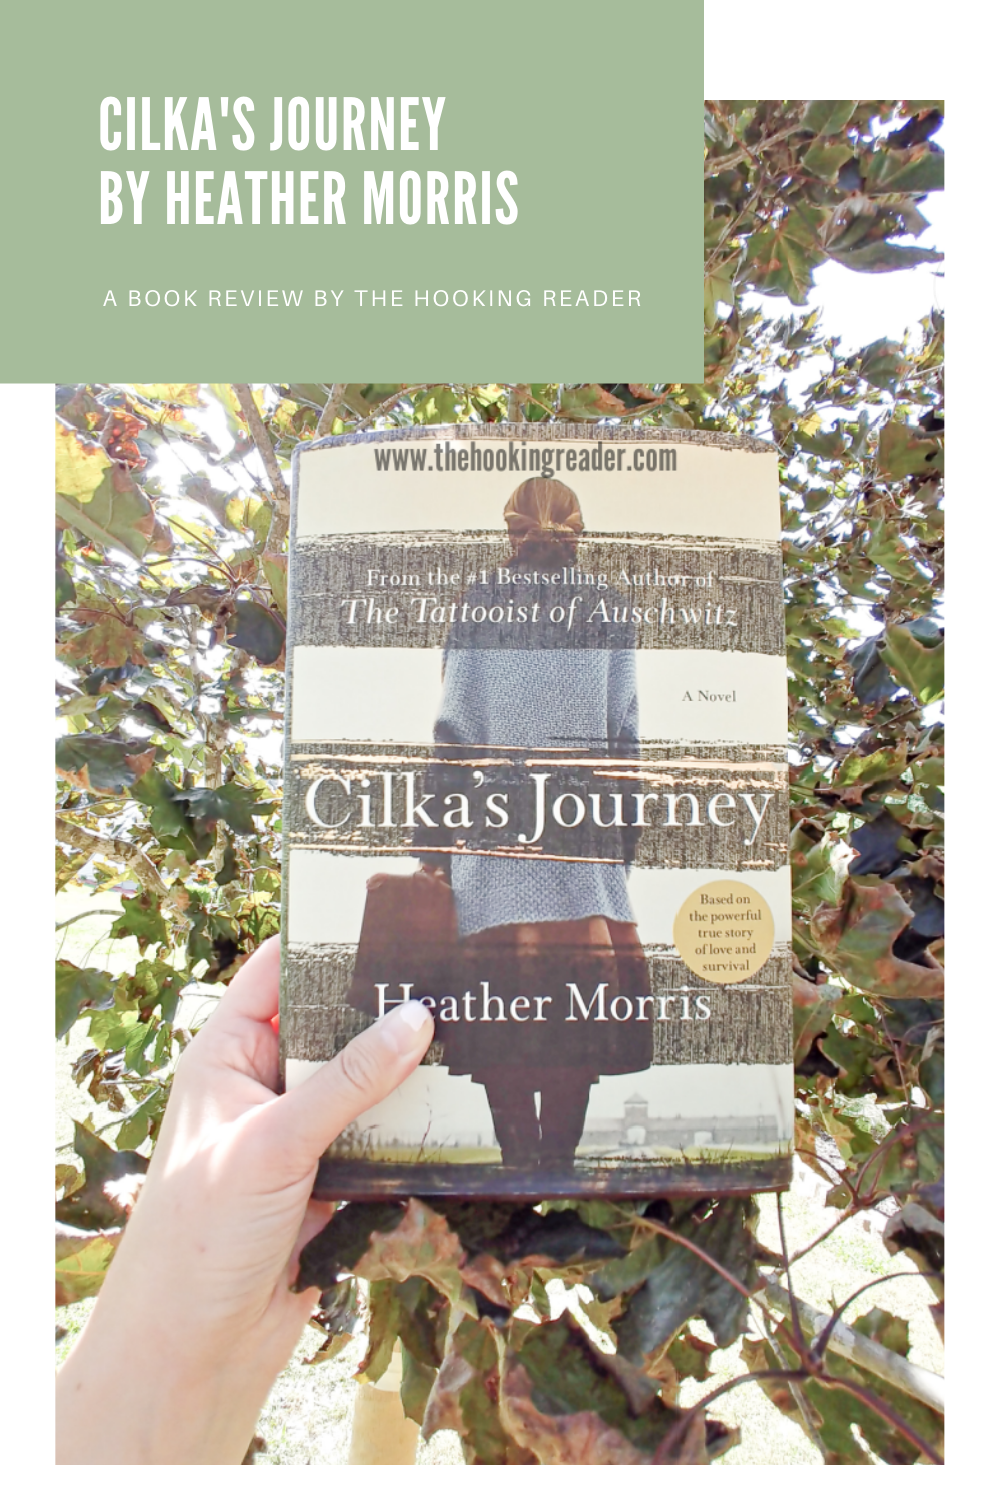 Book Review: Cilka's Journey by Heather Morris